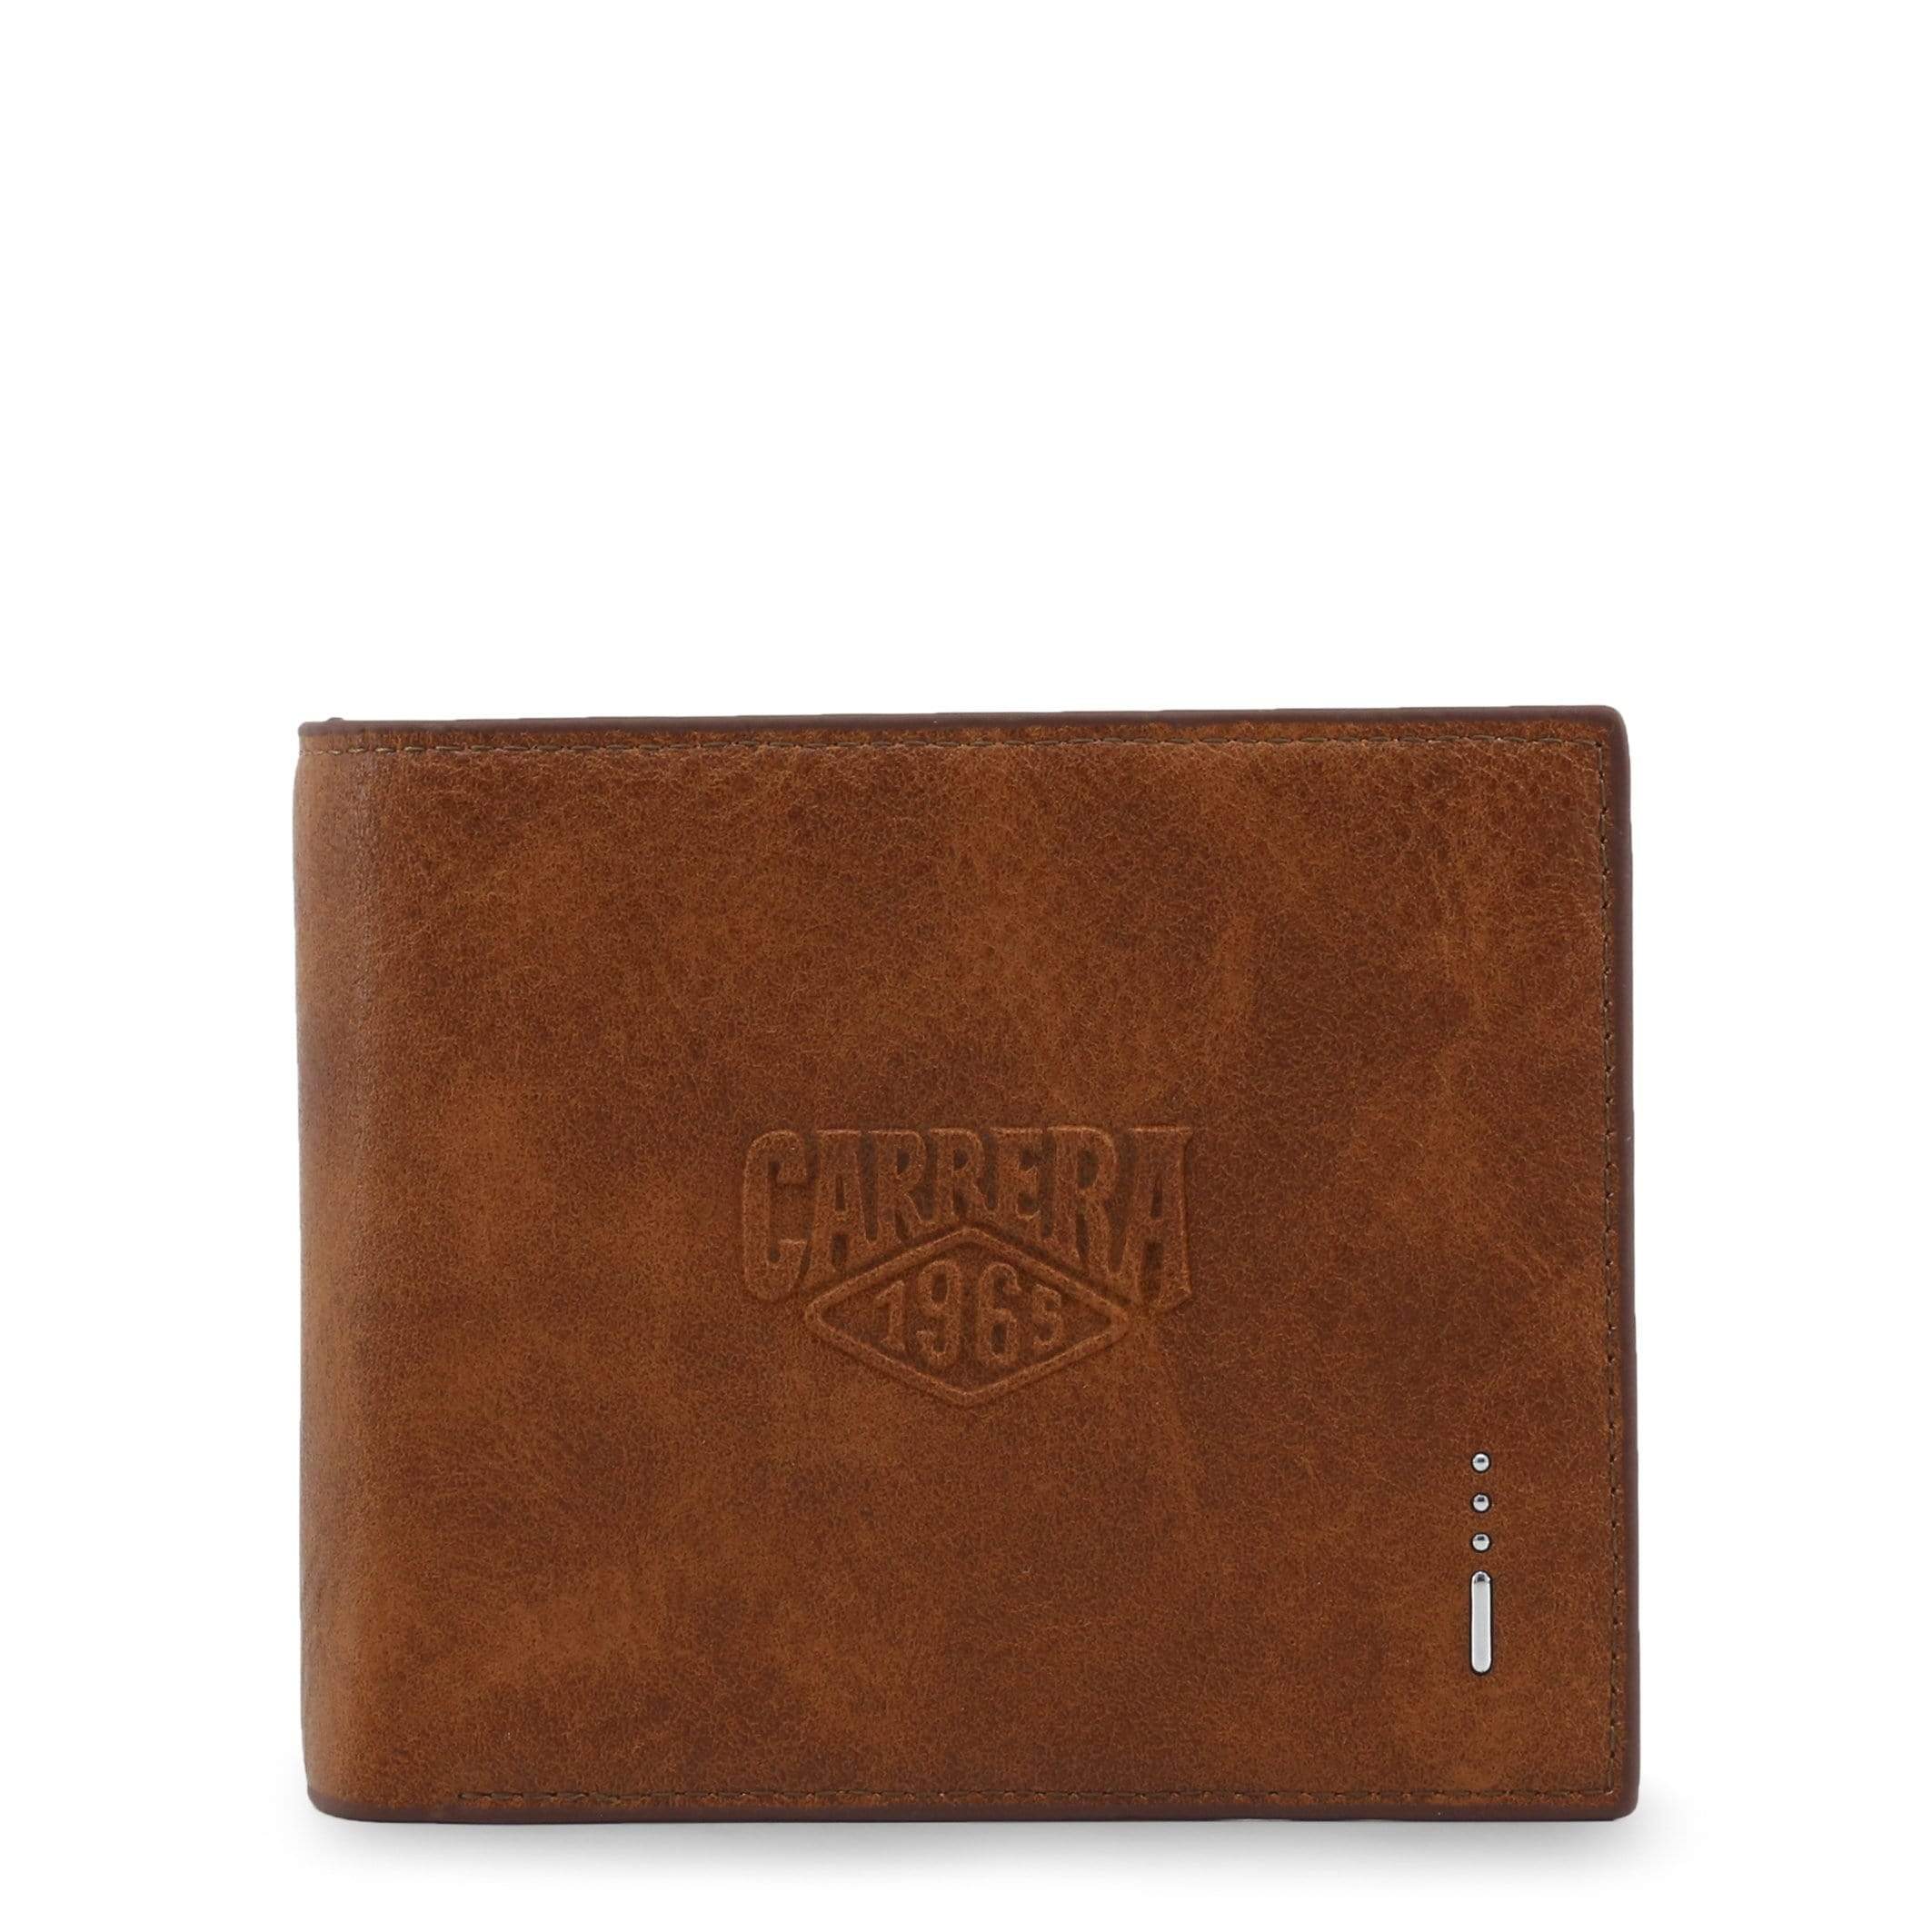 Carrera Jeans Accessories Wallets brown-1 / NOSIZE Carrera Jeans - CB622